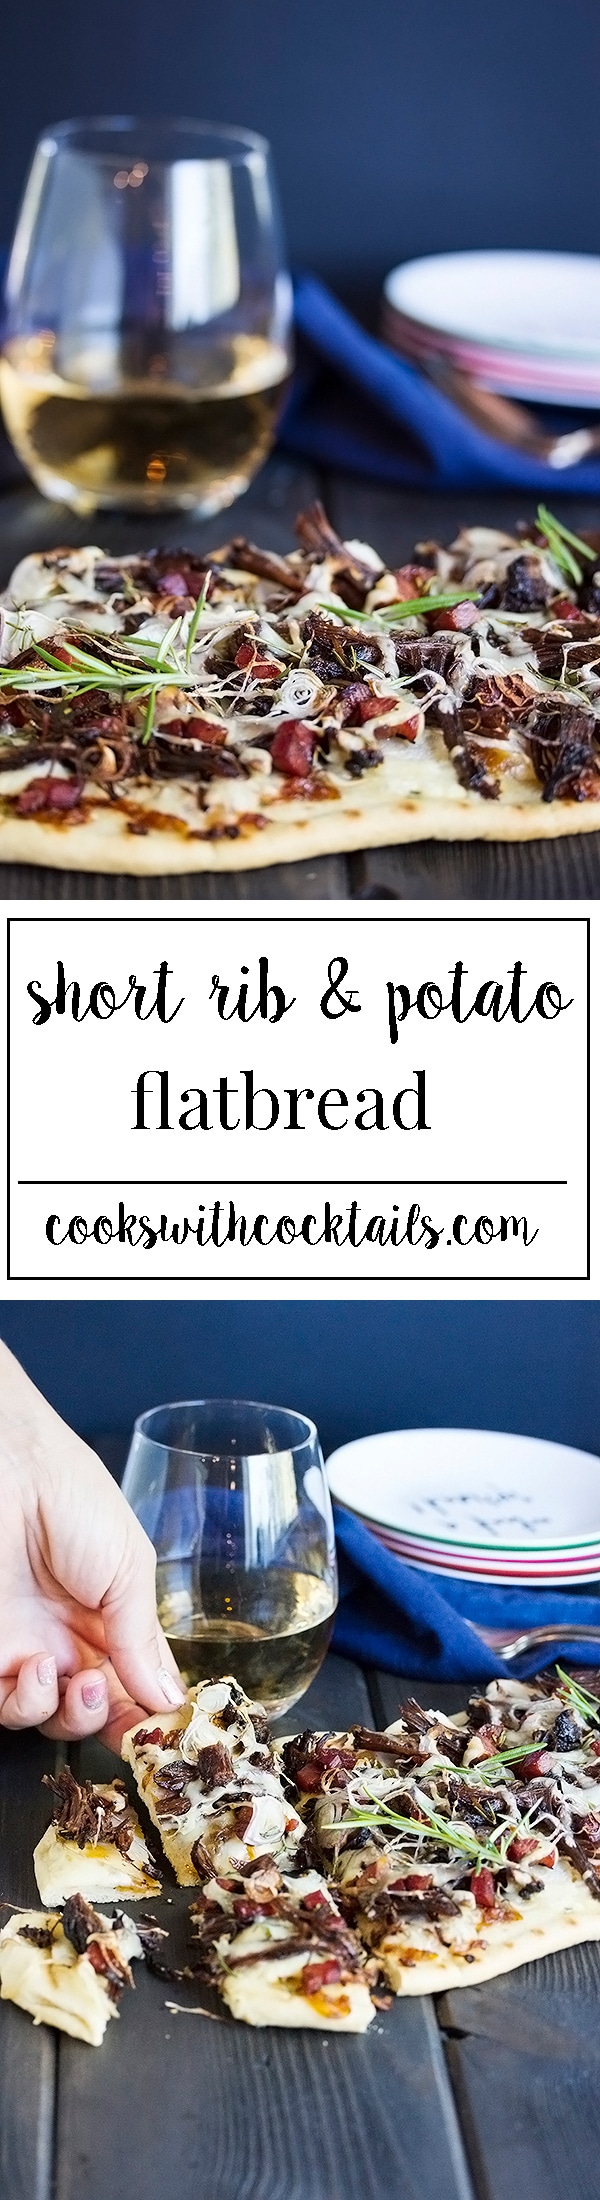 A short rib flatbread pizza made with incredibly tender instant pot short ribs, thinly sliced potato, bacon, shallots andgruyere cheese is a delicious way to use left over short ribs. Make this as an appetizer for game day or just a dinner for your family. #instantpotrecipe #shortrib #appetizerrecipe